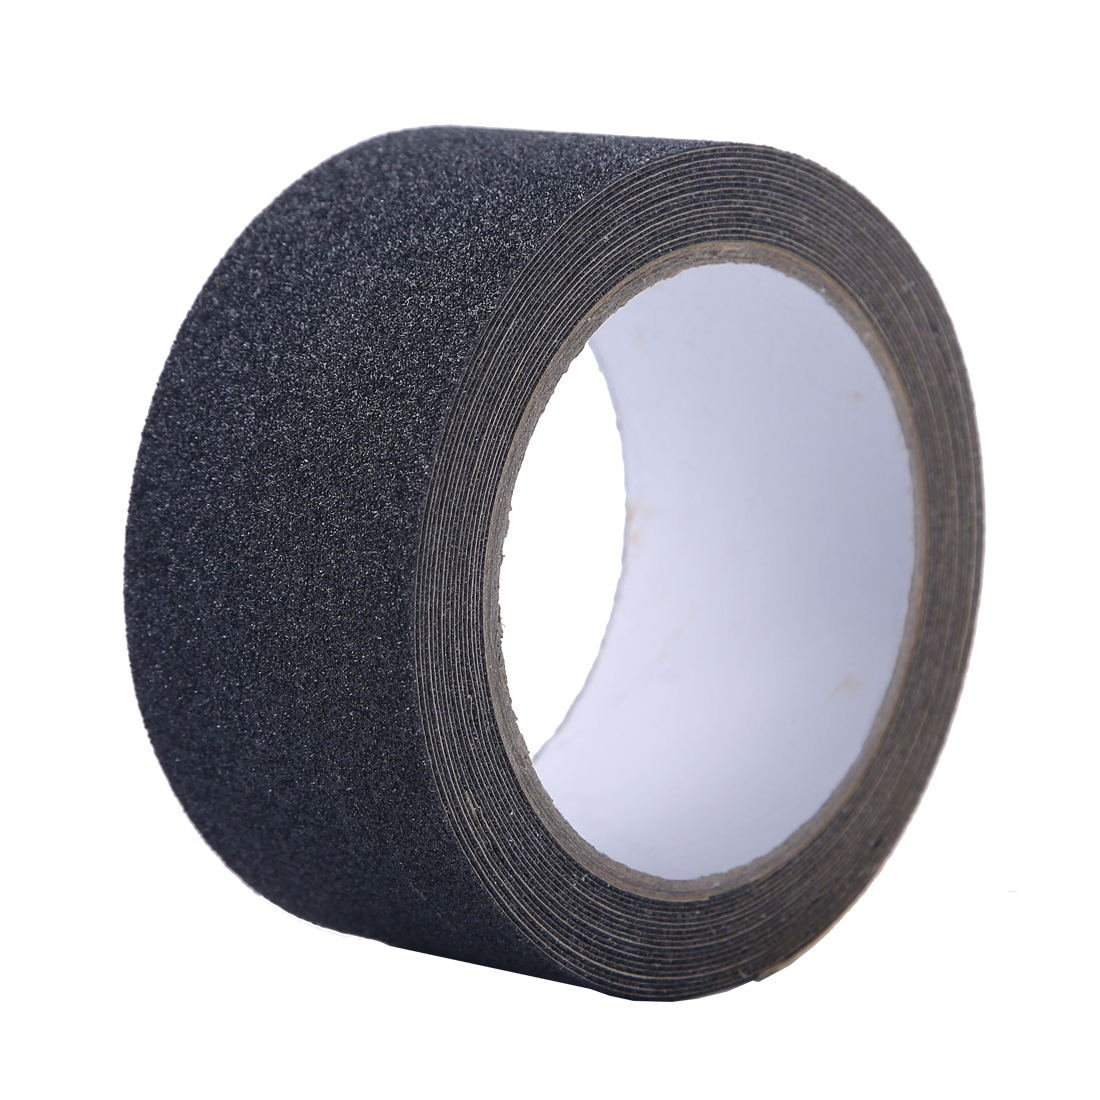 Non Slip High Traction Safety Tape For Srair Steps Outdoor Black Safety Anti Slip Grip Adhesive Tape 2 Inch 5cm 5m x 16.4 Foot